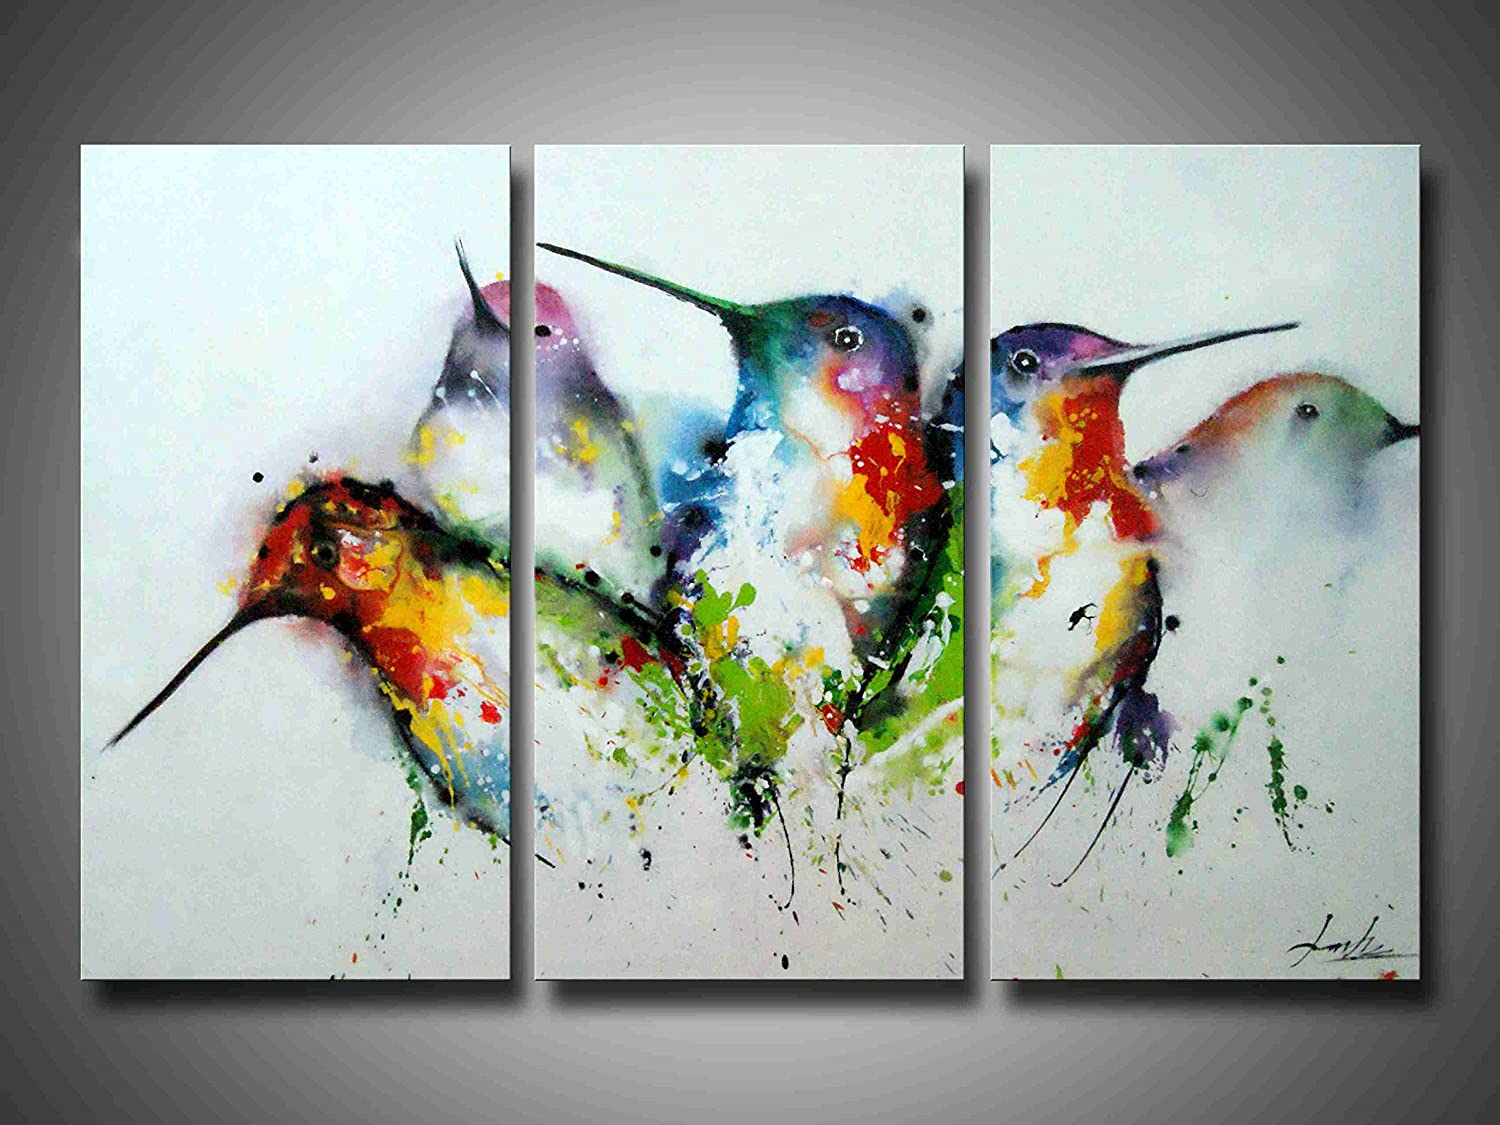 Wall art painting modern - Amazon Com Artland Modern 100 Hand Painted Framed Wall Art Colorful Birds 3 Piece Animal Oil Painting On Canvas For Living Room Artwork For Wall Decor